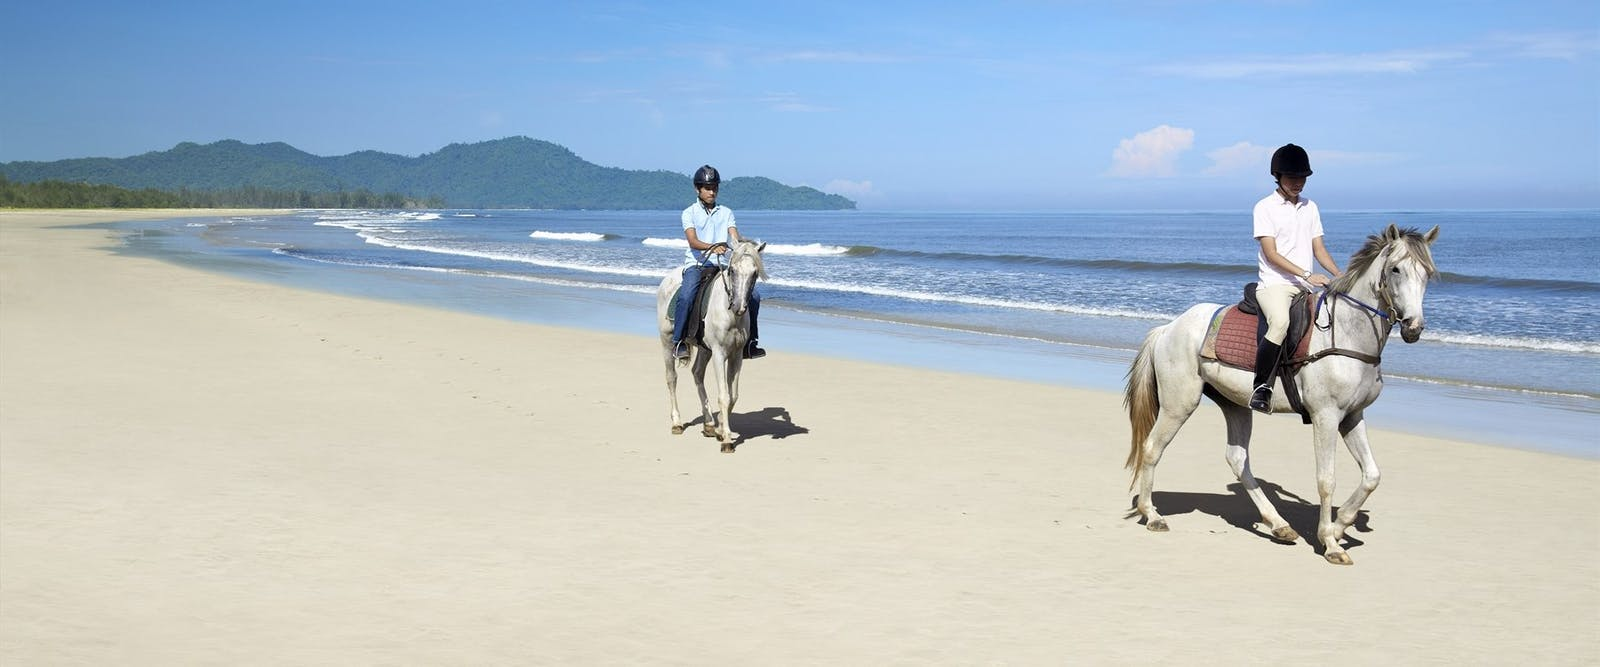 Horseriding on the beach at Shangri La Rasa Ria Resort, Borneo